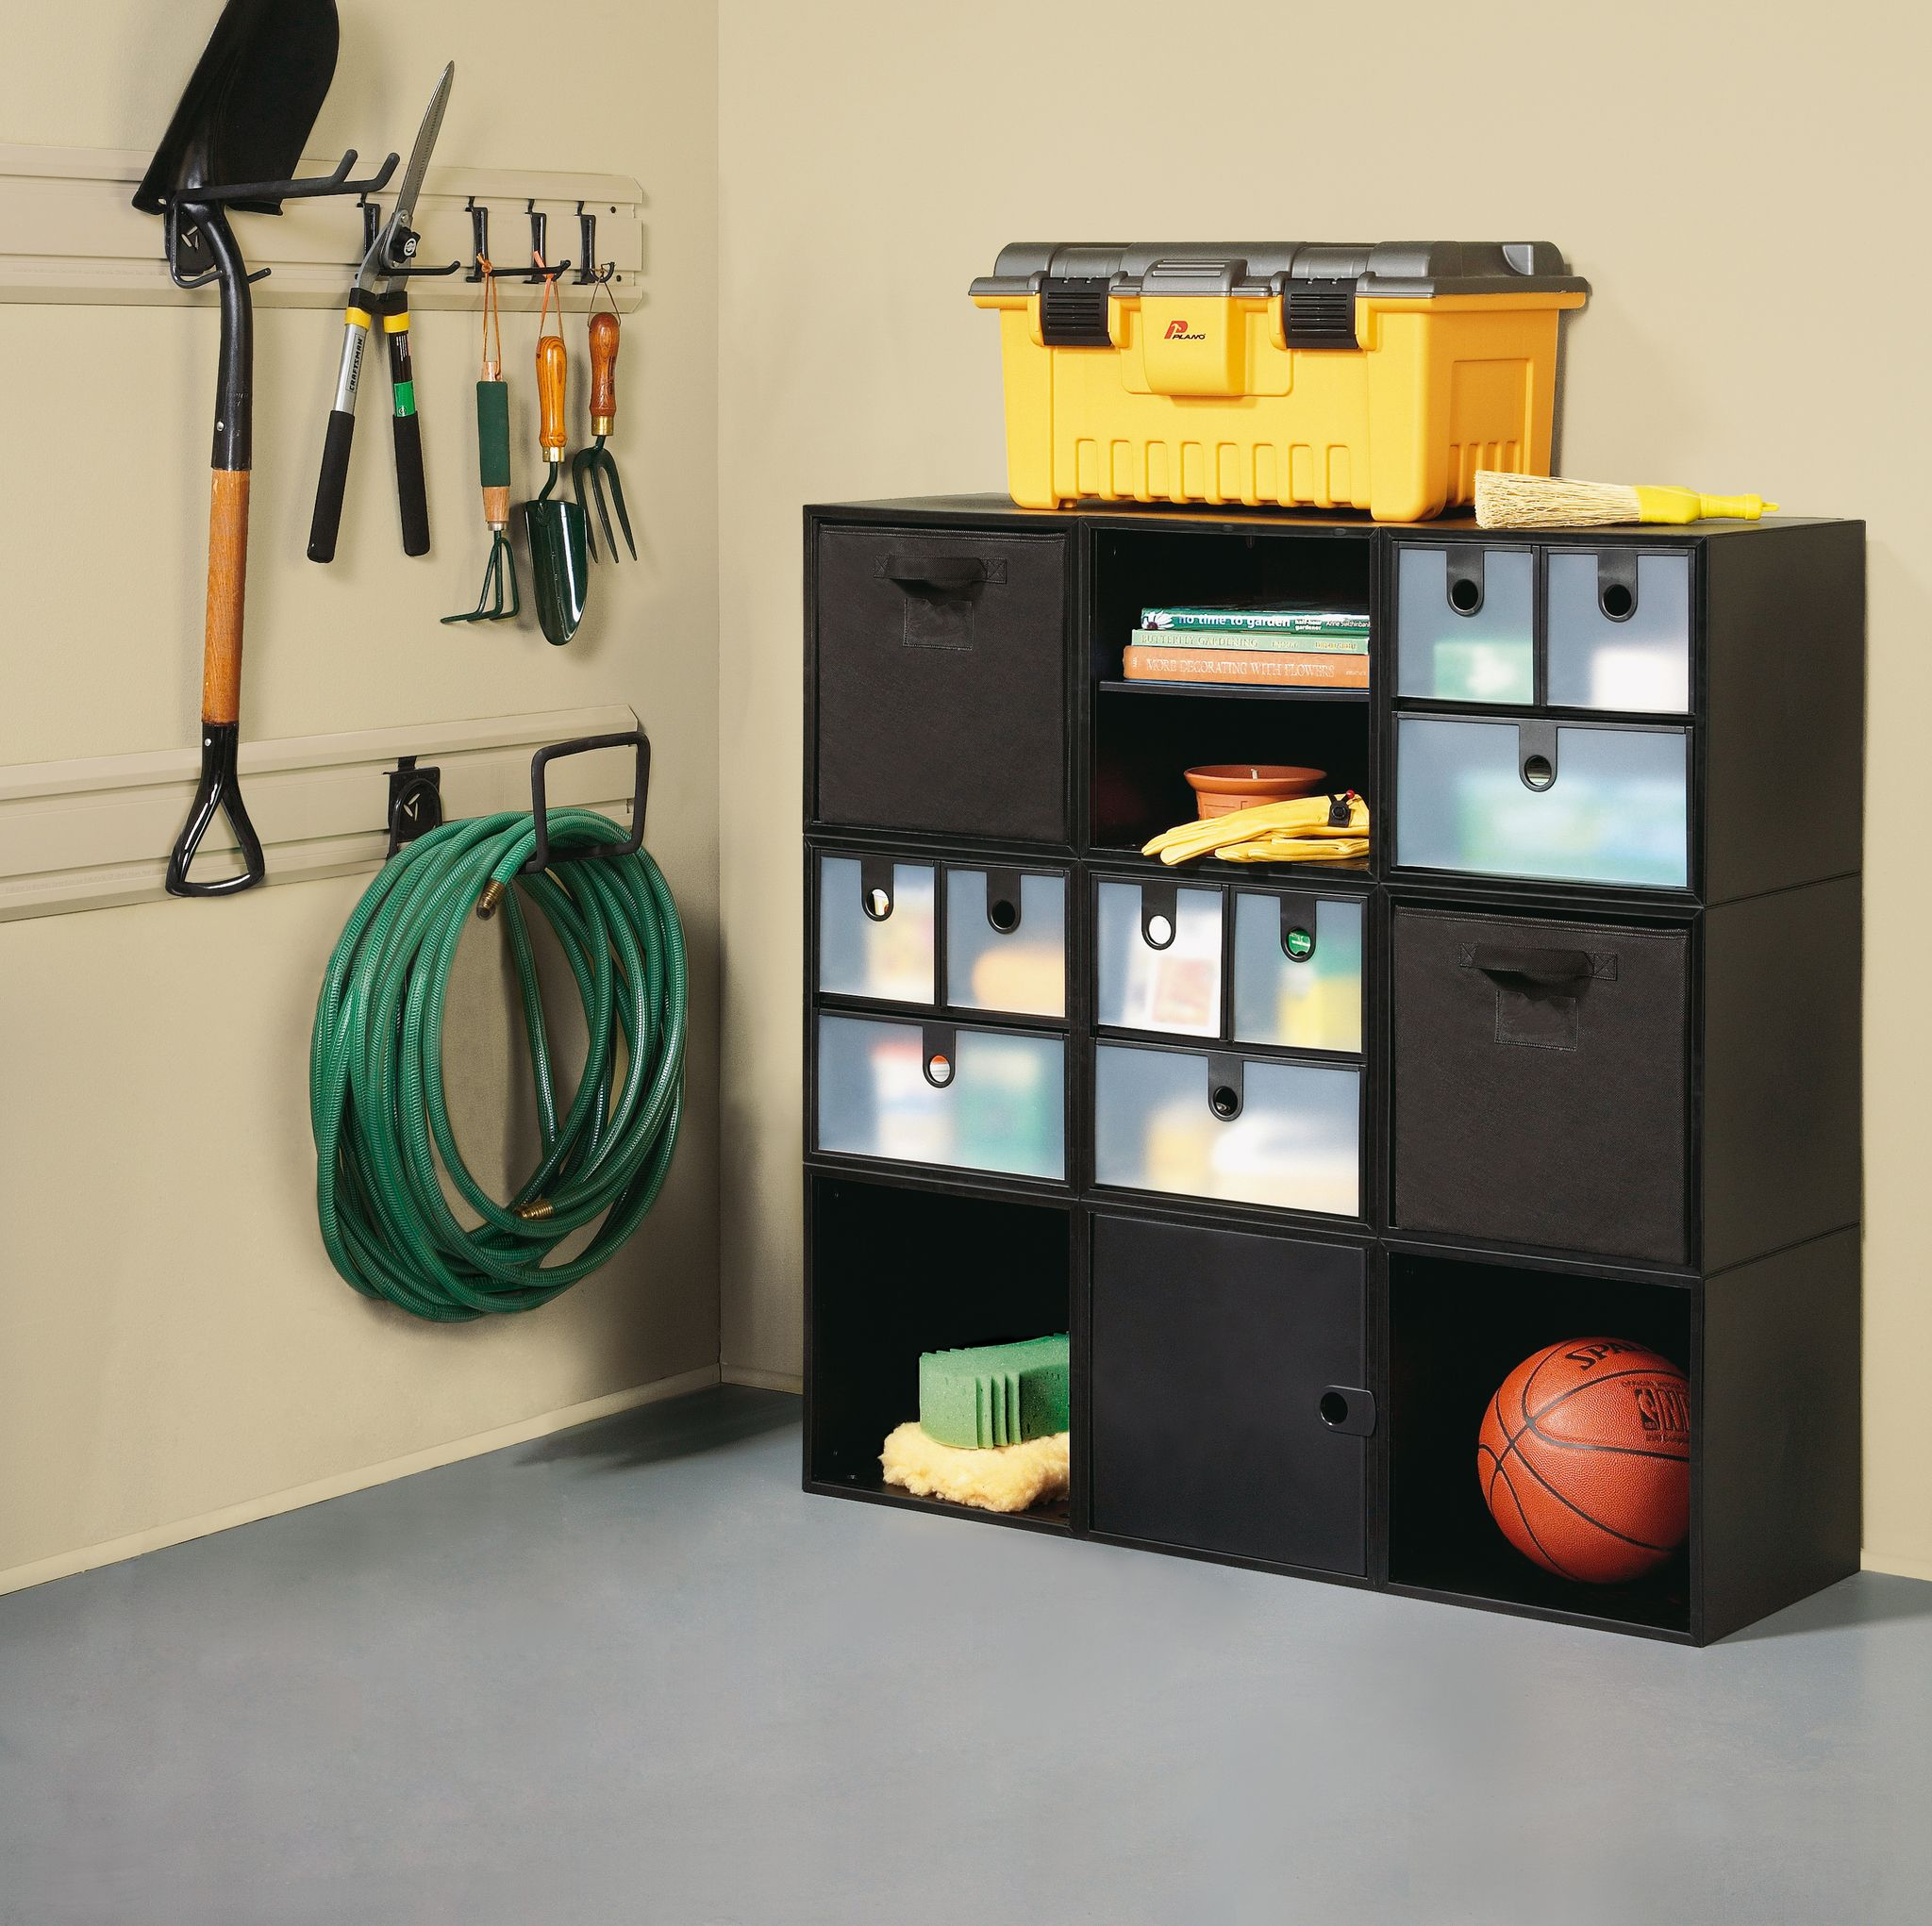 tips garage storage the change laundry pin convert like tall room organization to mud could